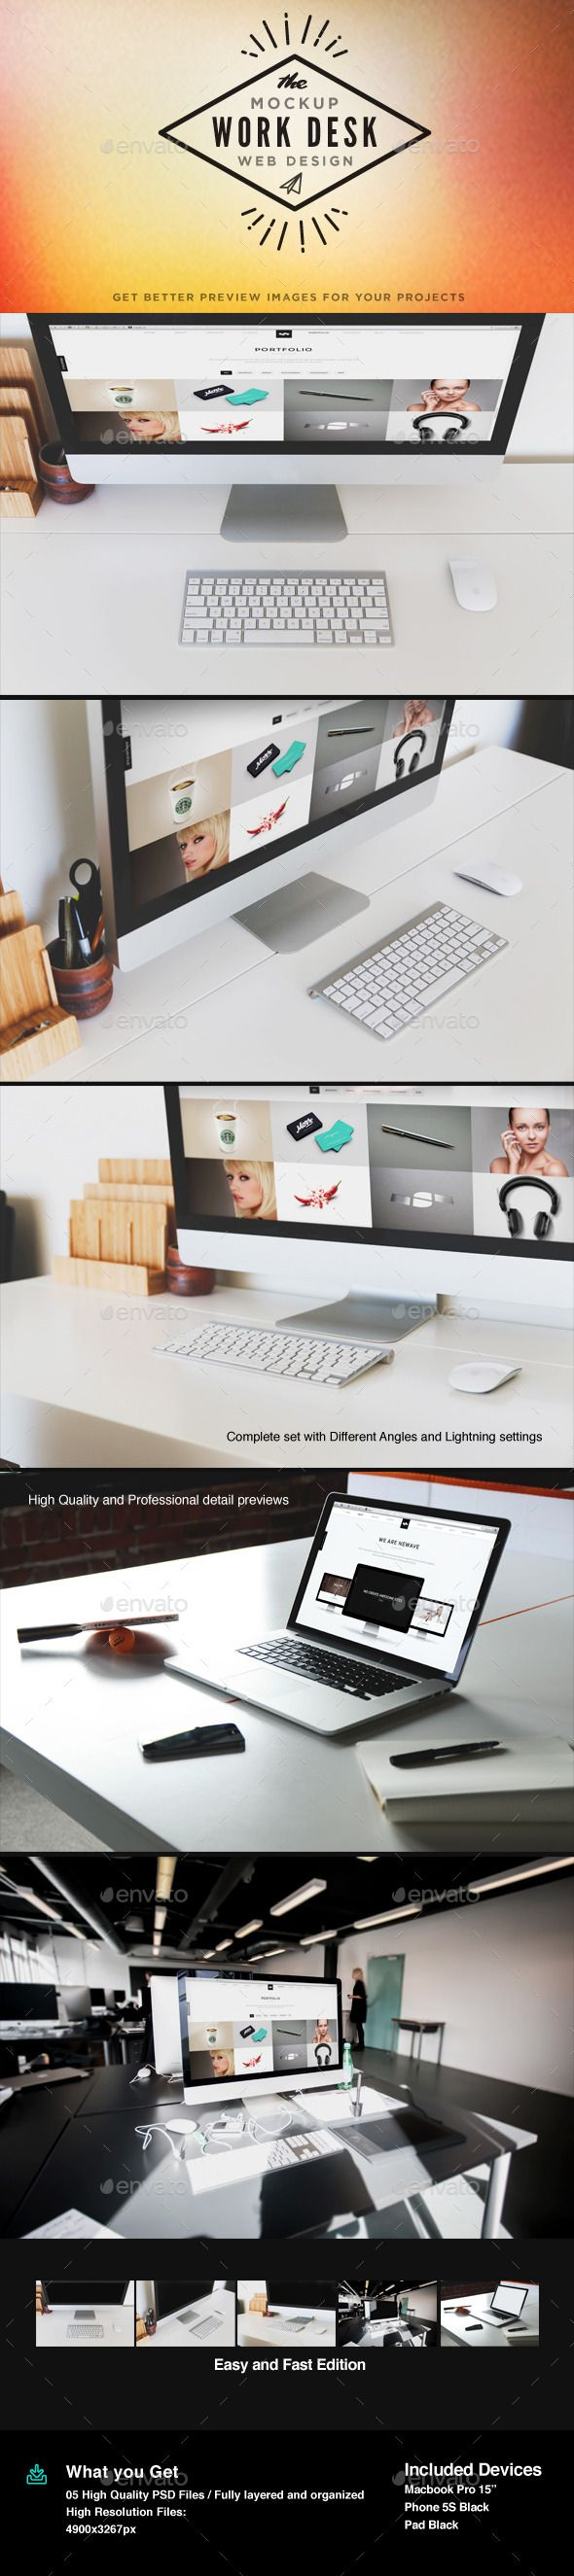 Display Screen MockUp — Photoshop PSD #responsive #responsive screen • Available here → https://graphicriver.net/item/display-screen-mockup/10937839?ref=pxcr